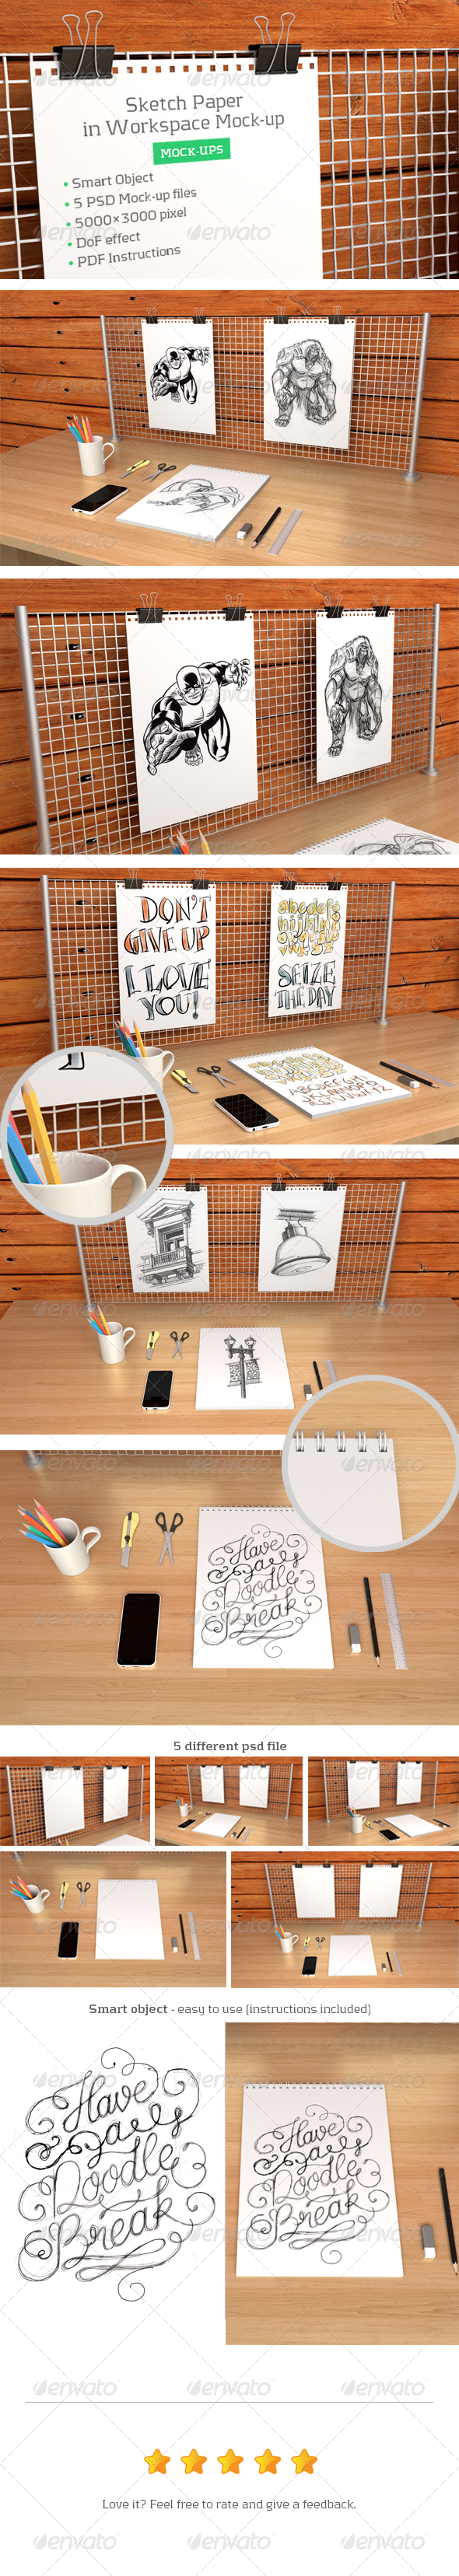 Sketch Paper in Workspace Mock-up - Print Product Mock-Ups